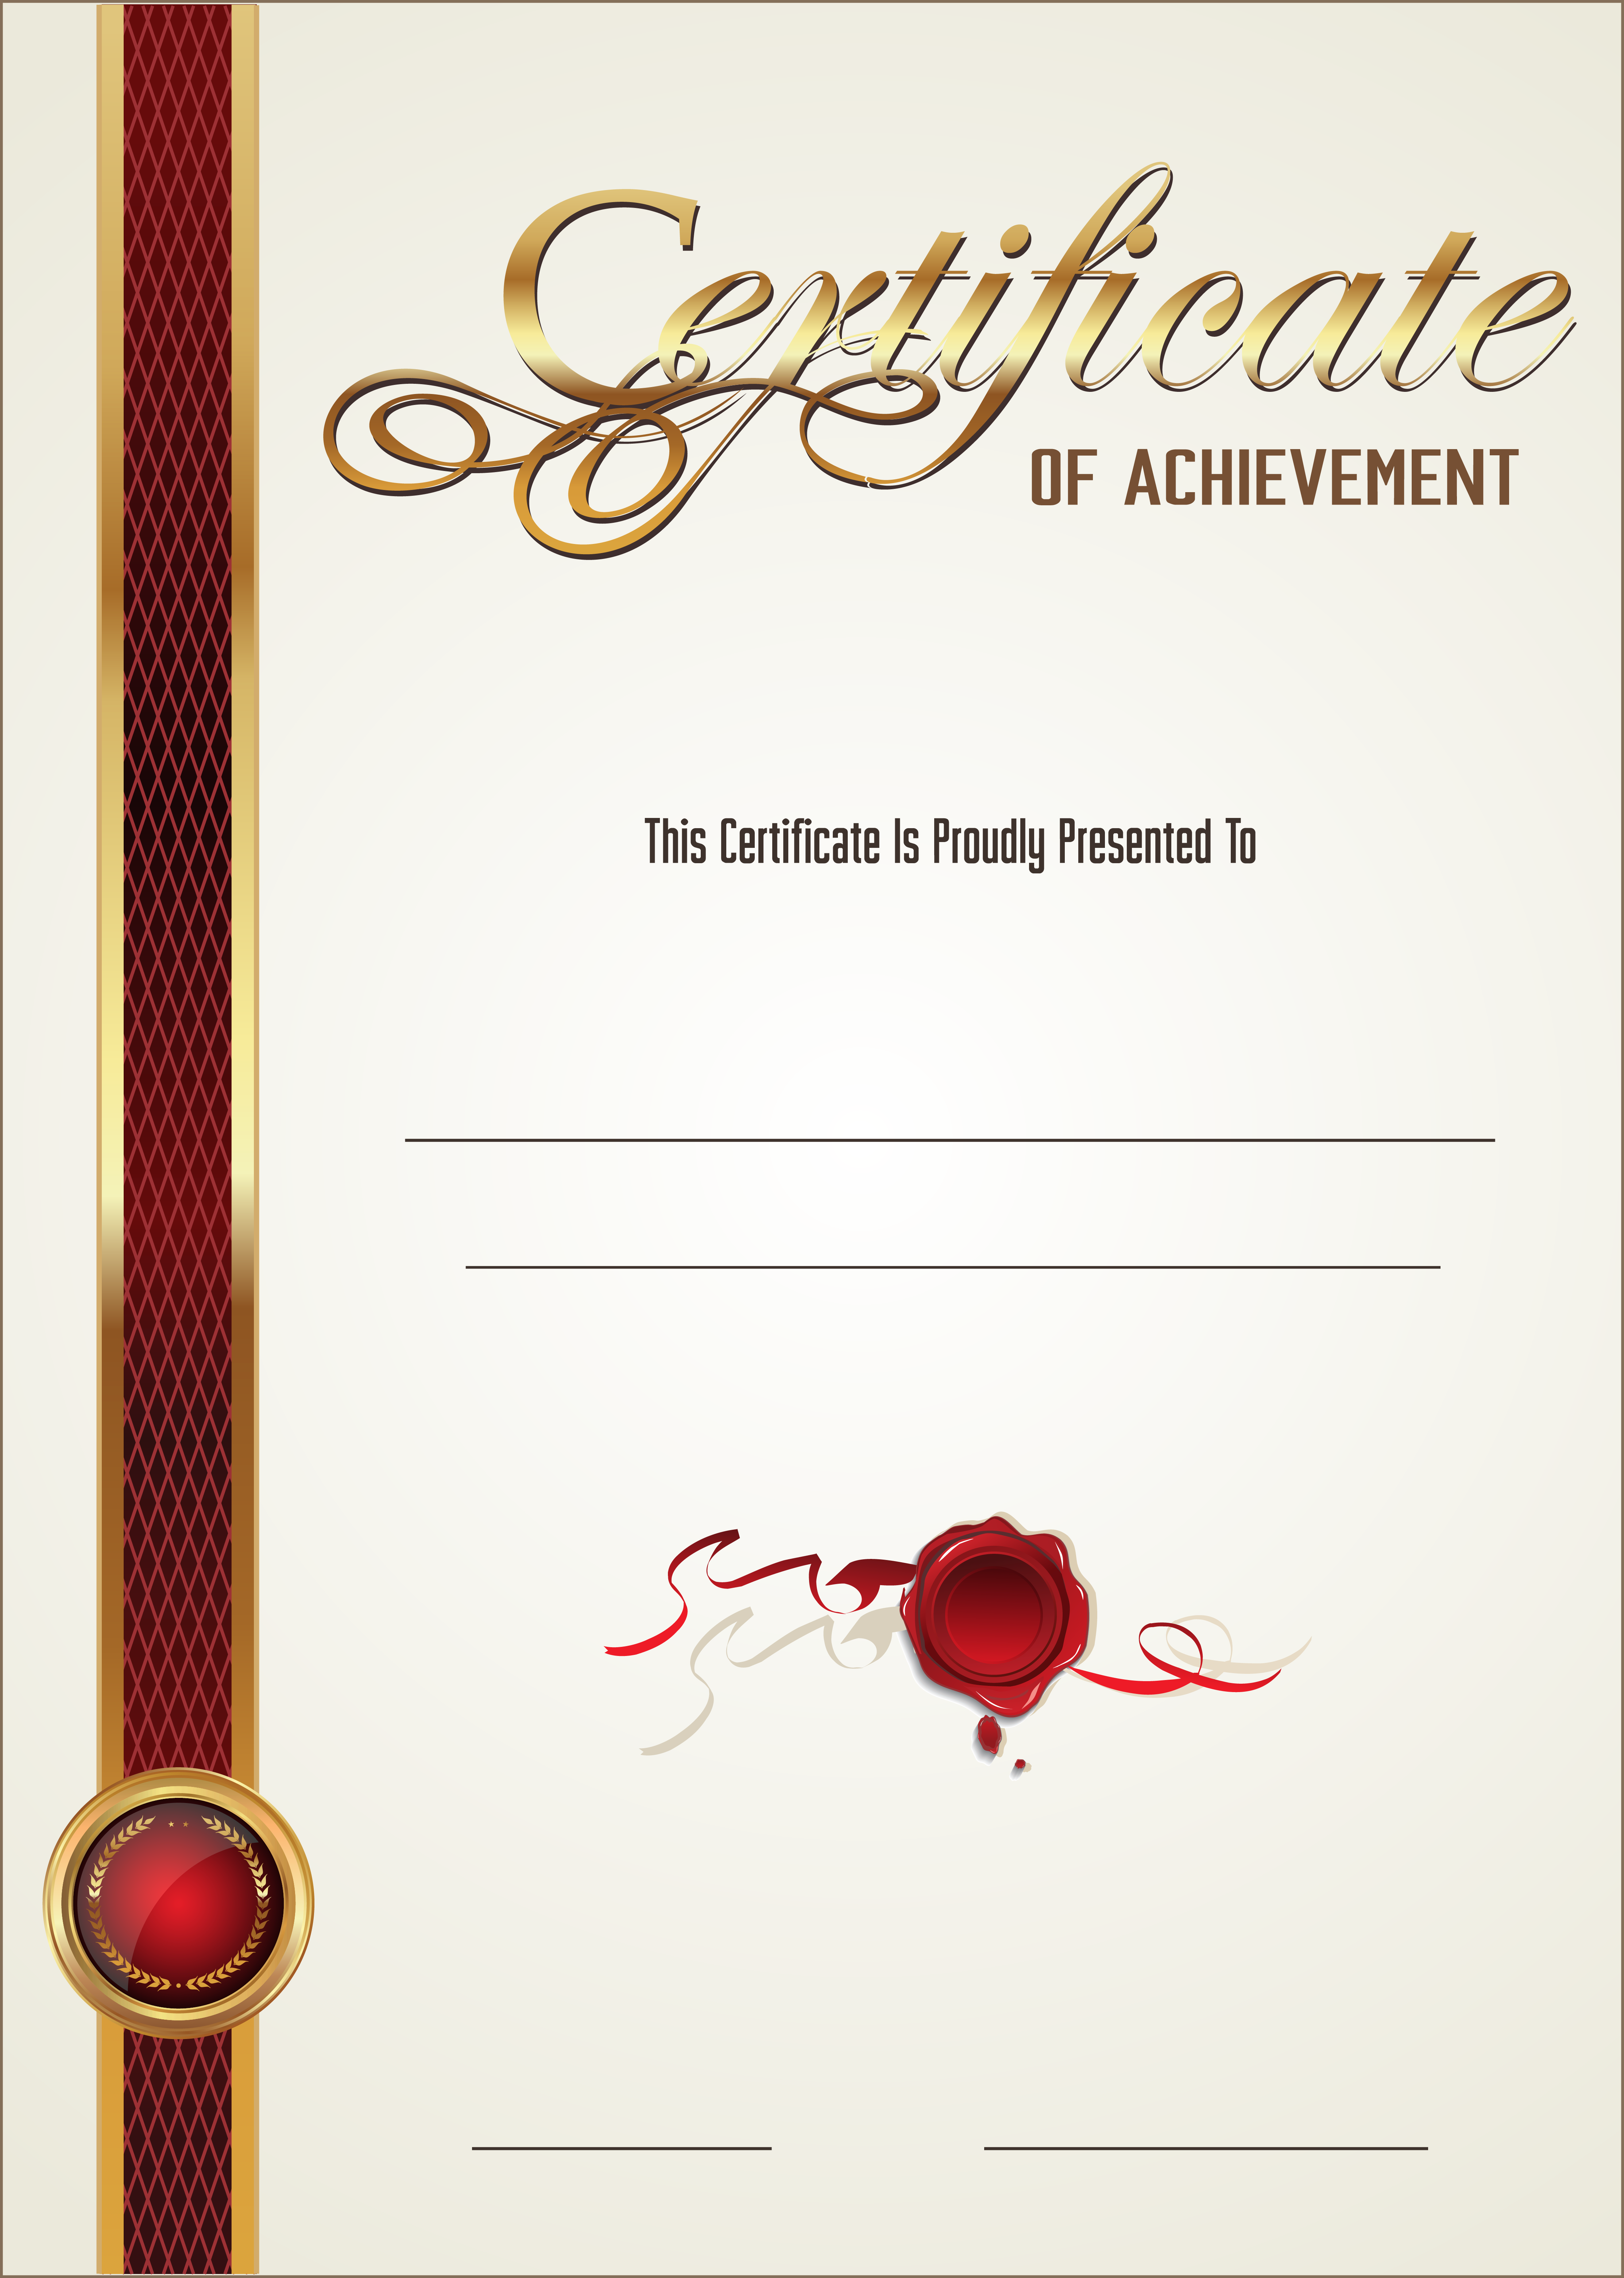 Certificate empty blank png image urgumjlul pinterest certificate empty blank png image xflitez Choice Image